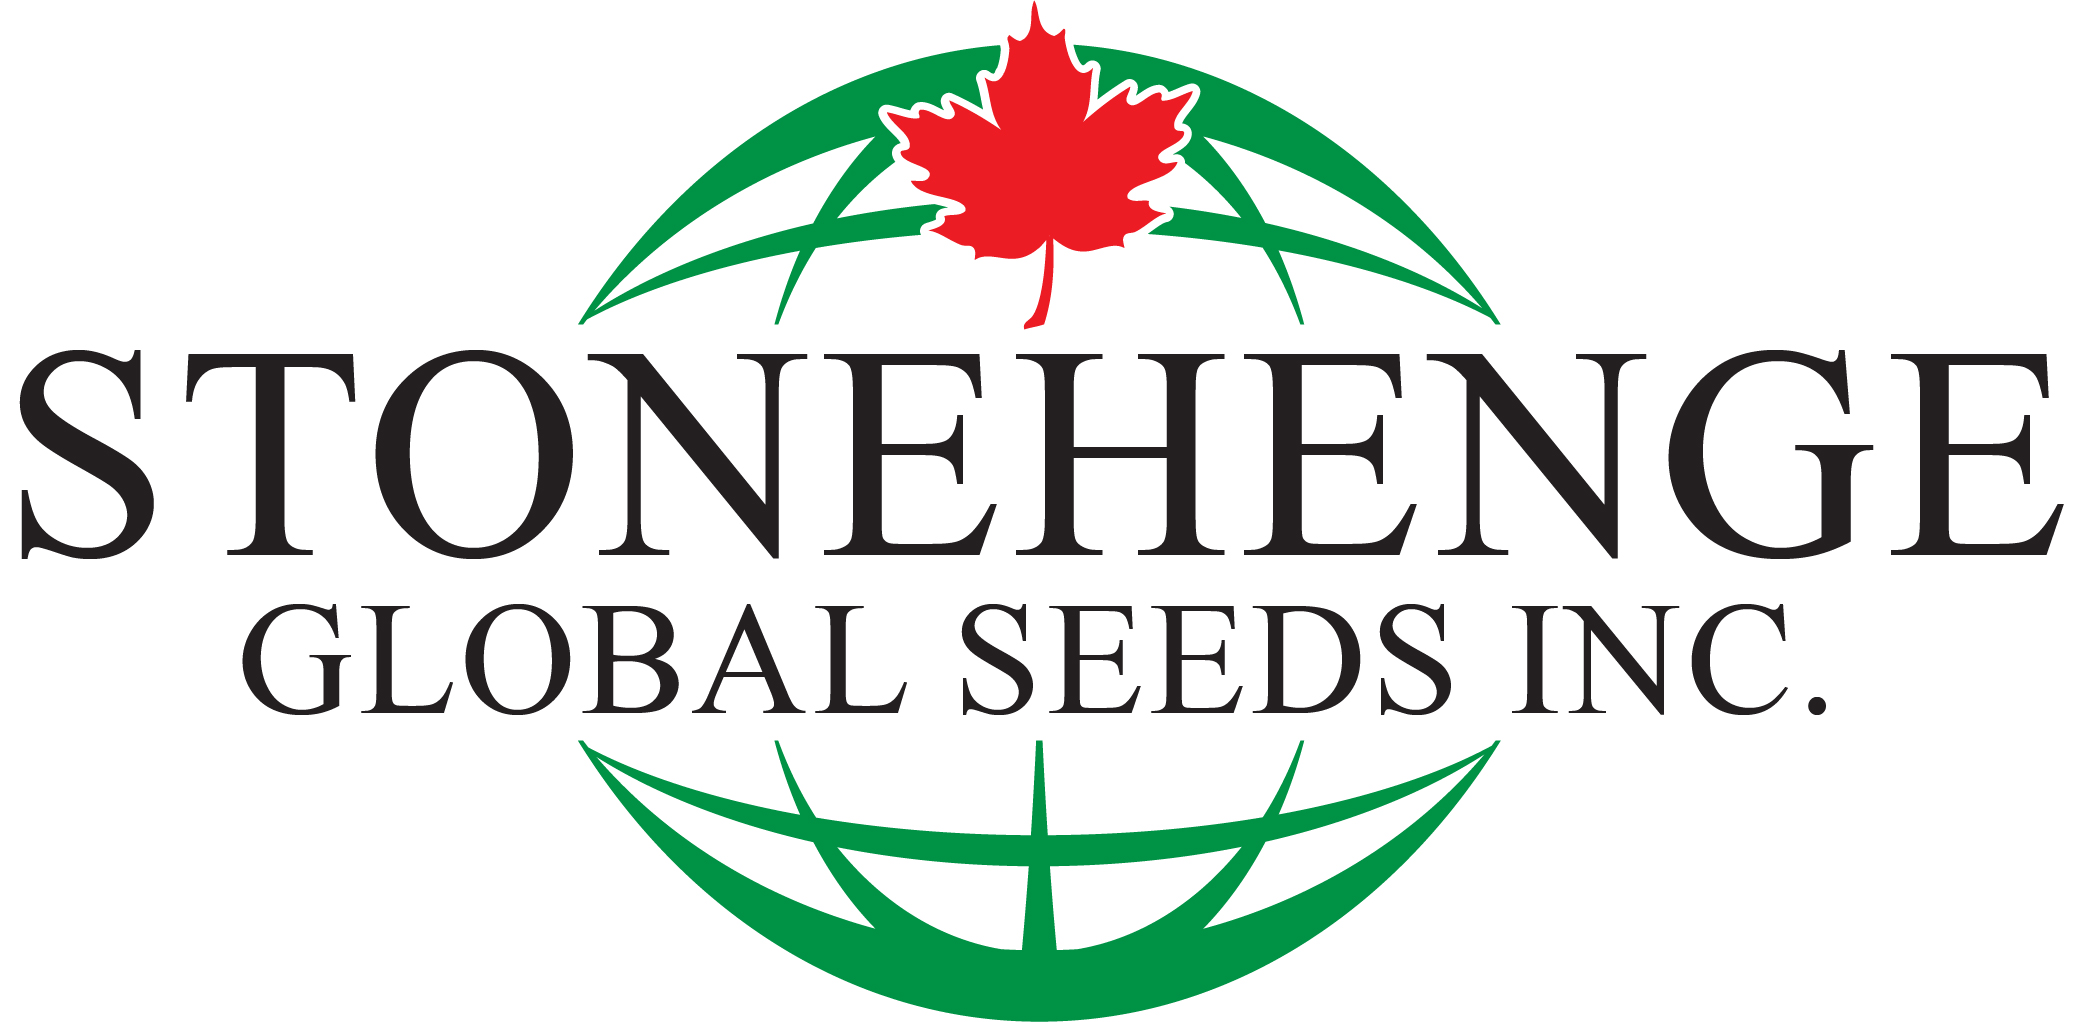 Stonehenge Global Seeds Inc